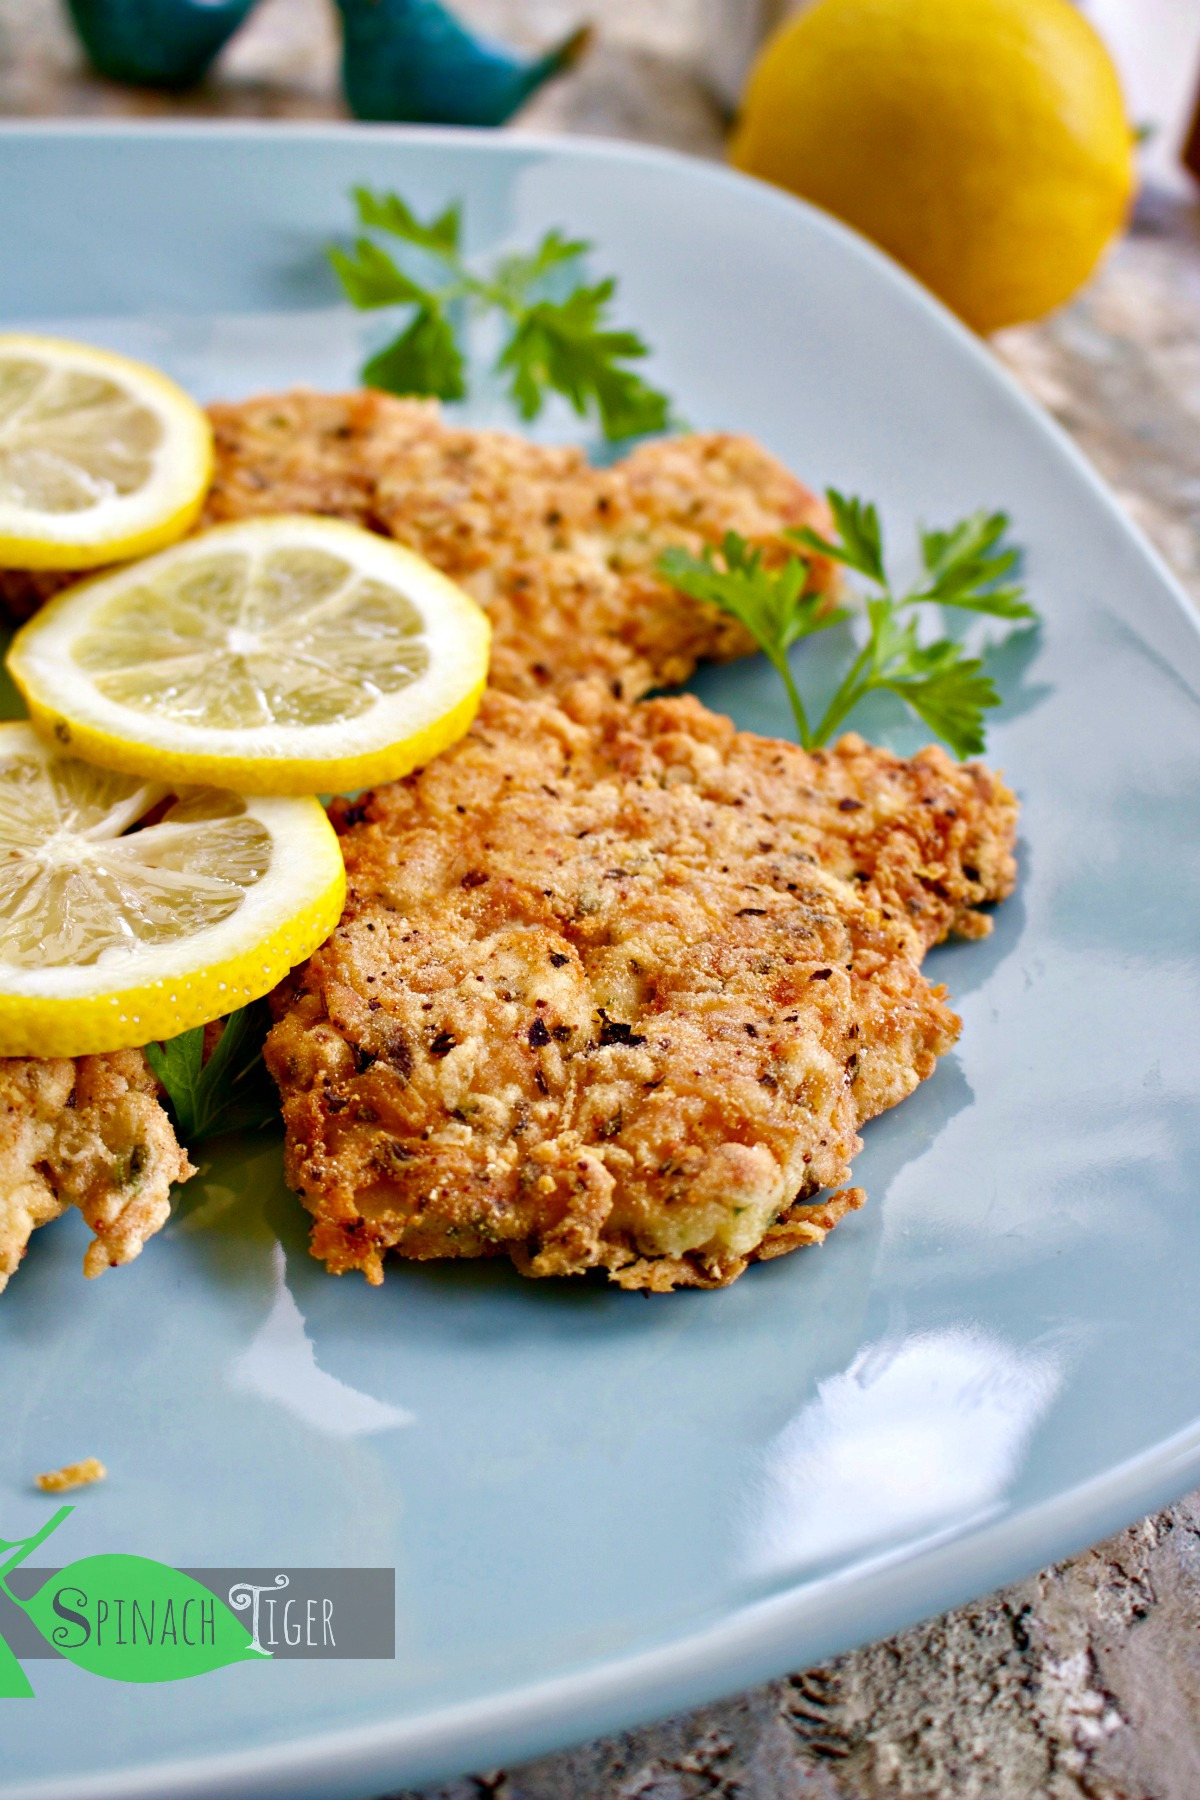 How to Make gluten free Italian Chicken Cutlets from Spinach Tiger